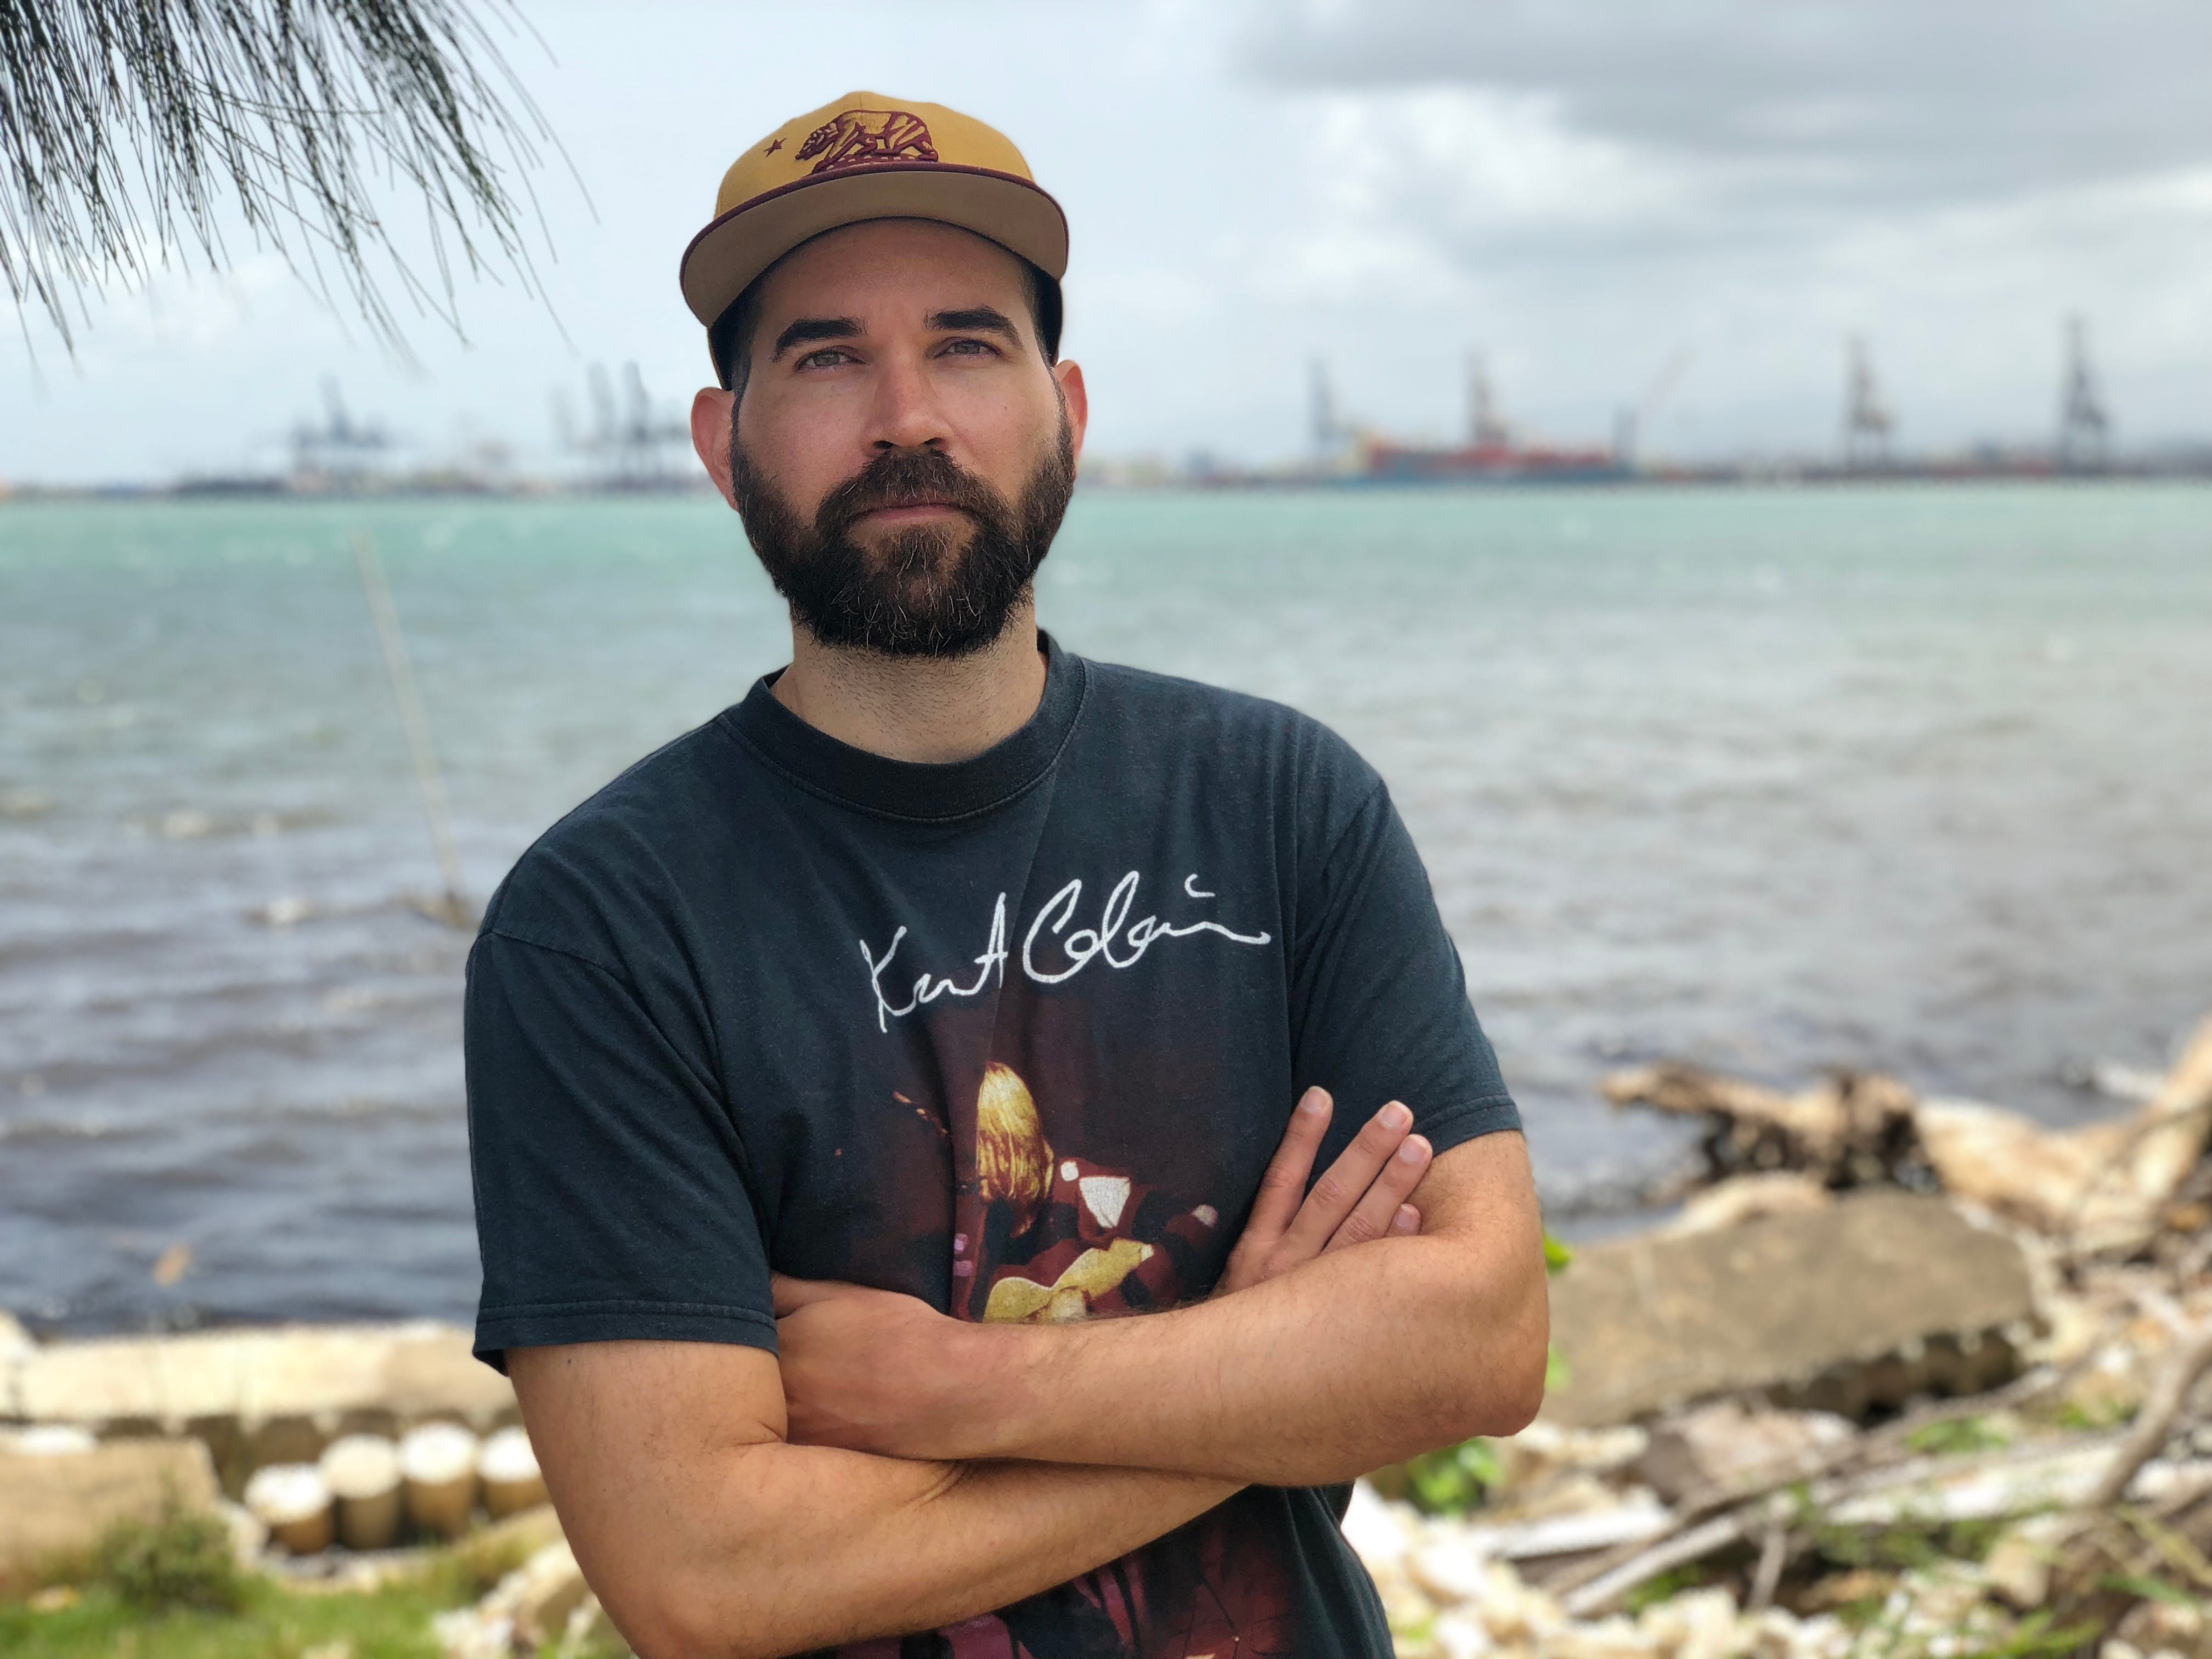 """Gabriel Miranda made a documentary titled """"Vietnam, Puerto Rico,"""" detailing the struggles the neighborhood south of San Juan has endured in fighting redevelopment and displacement of its residents."""